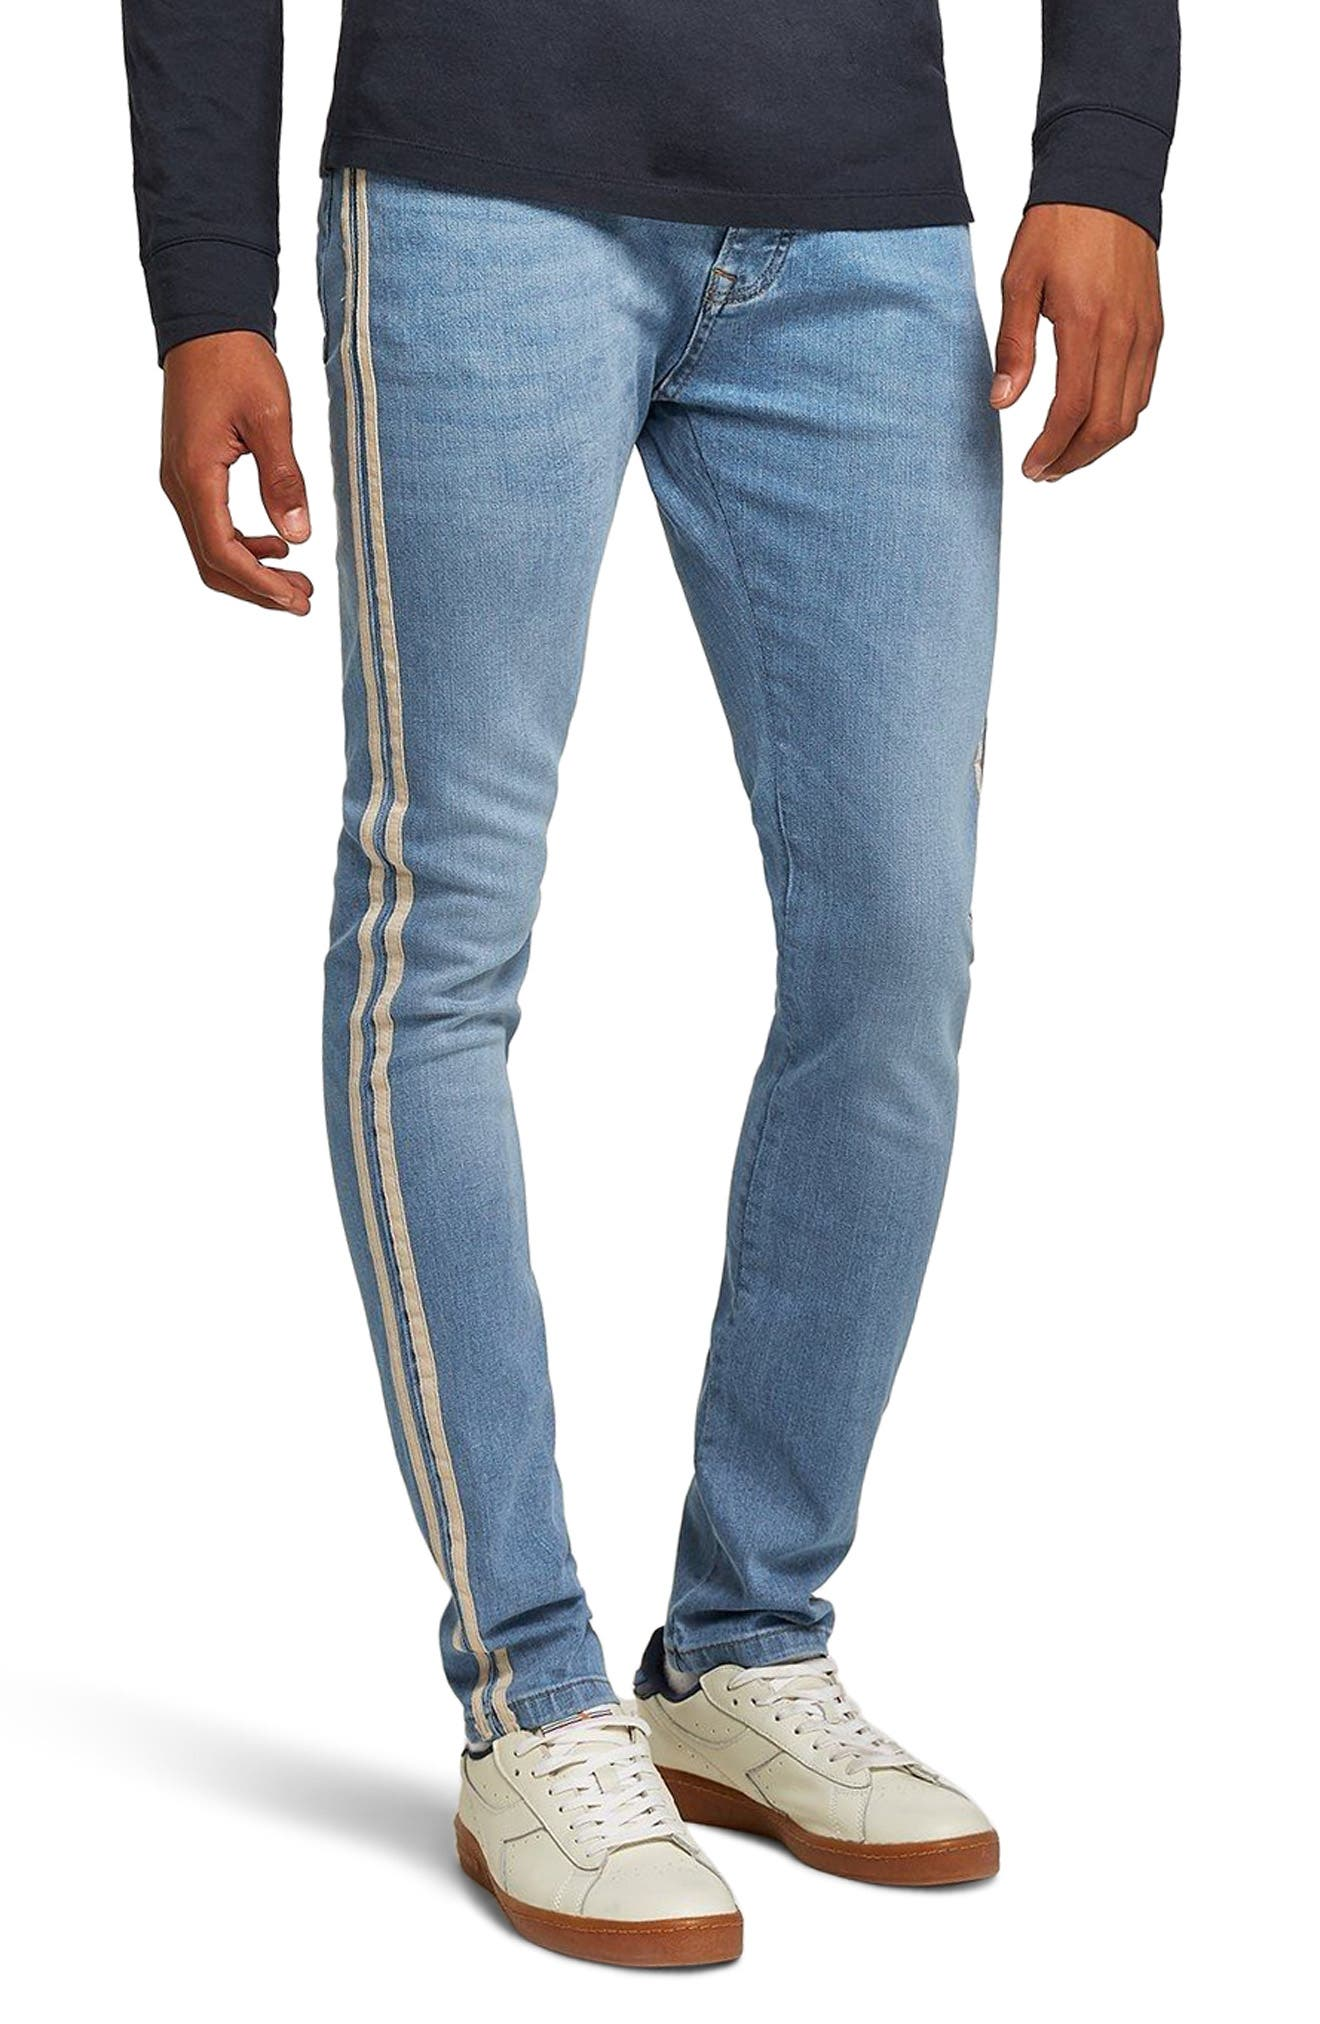 Tape Stretch Skinny Fit Jeans,                             Main thumbnail 1, color,                             BLUE